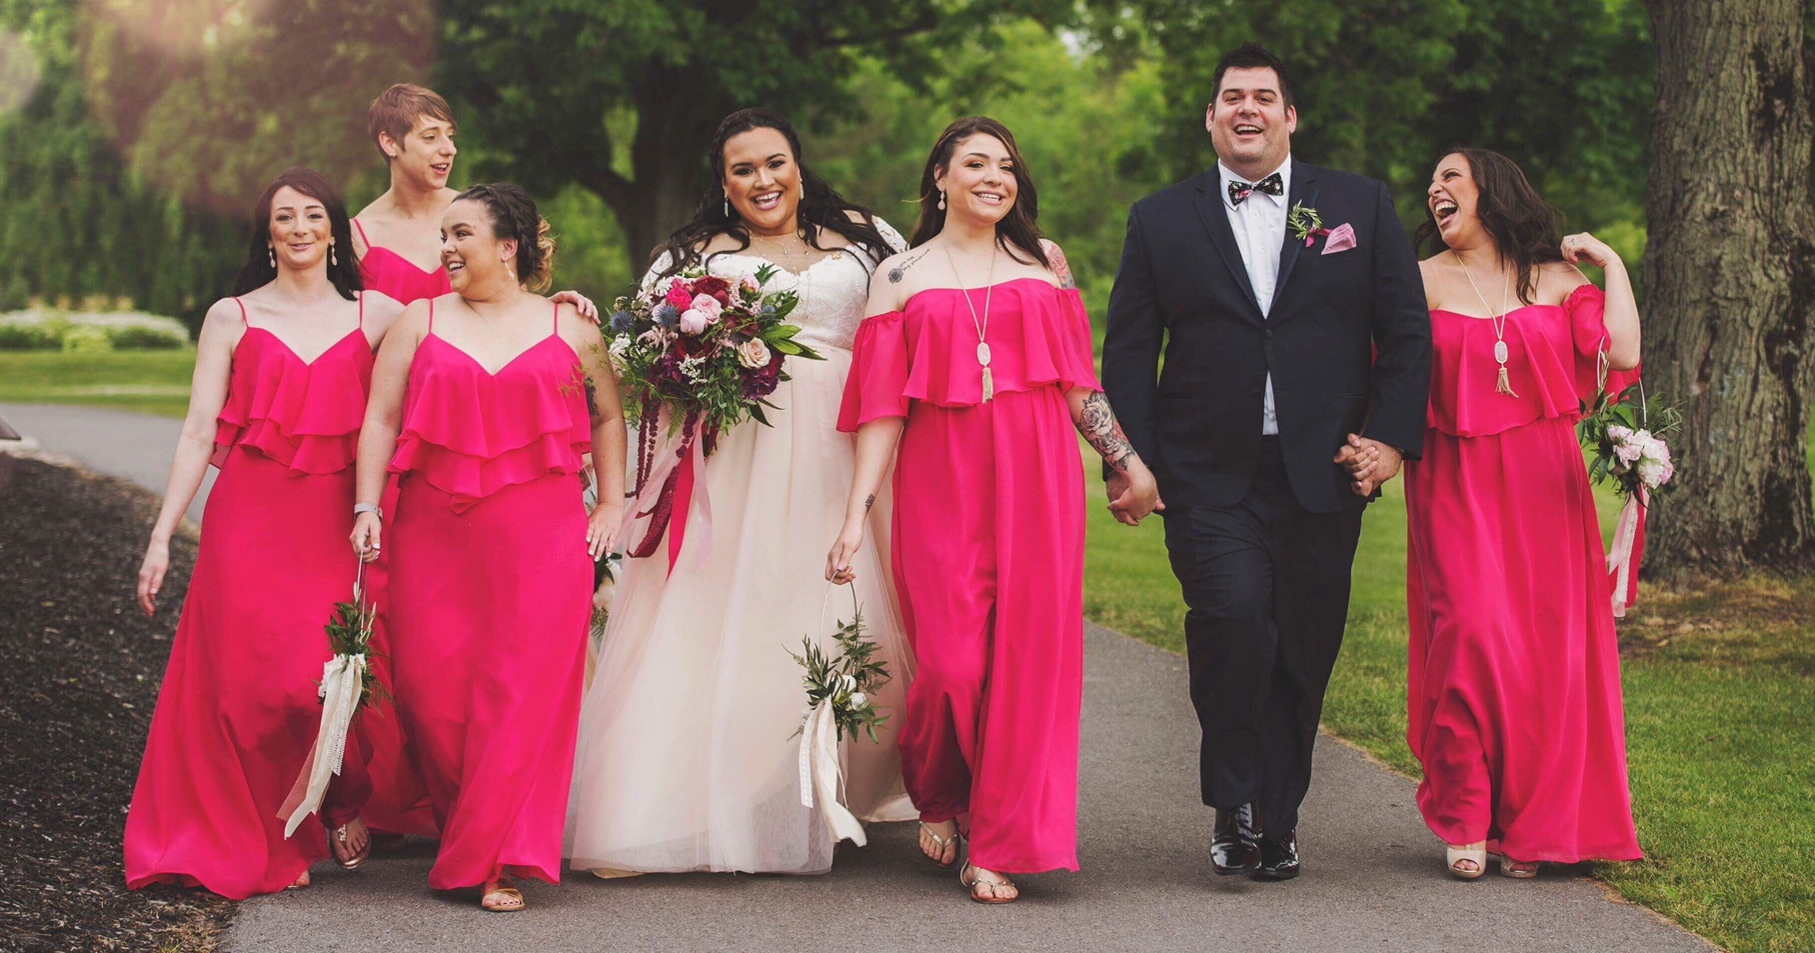 Bridal Body Positivity & A Gorgeous Gown Make For Style Success.